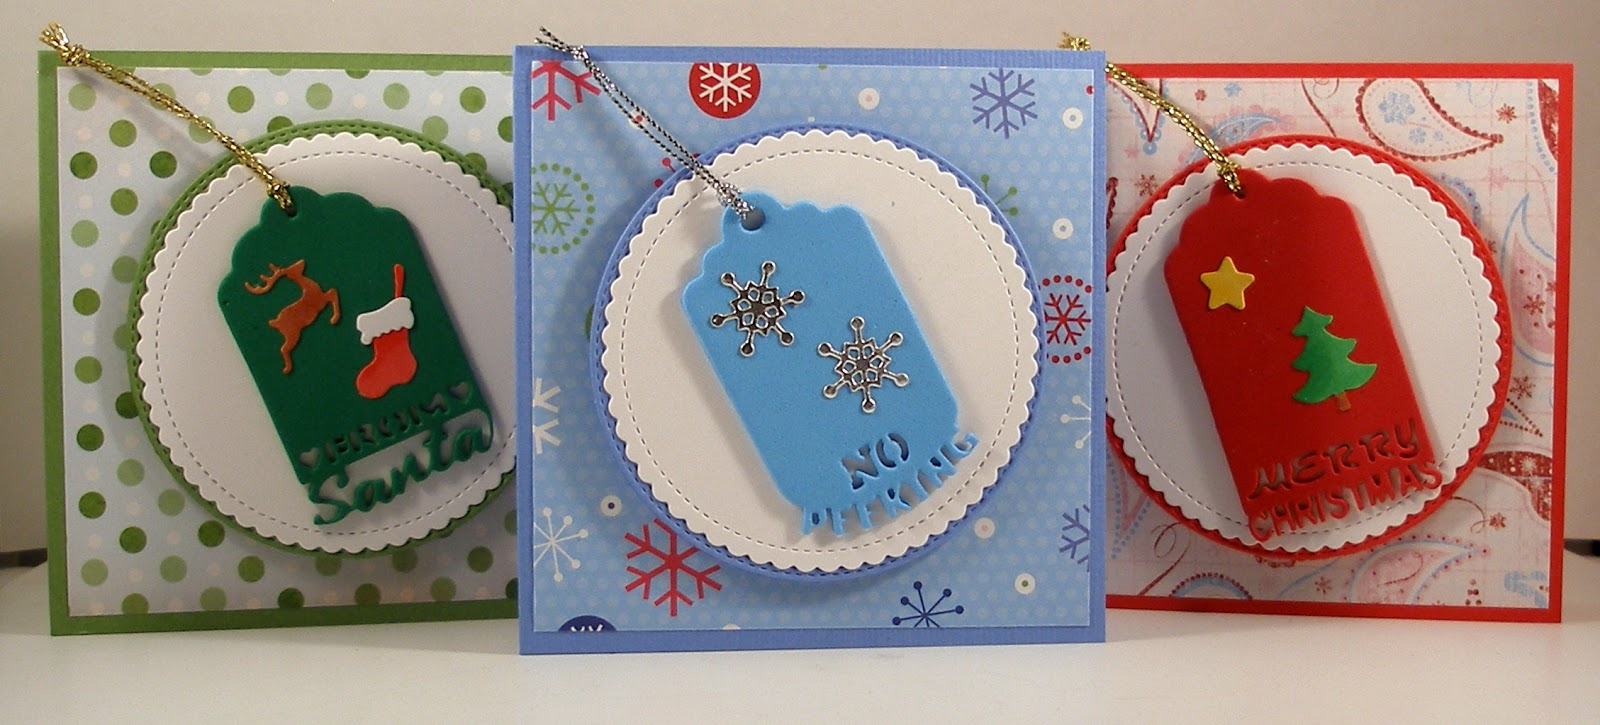 CottageBLOG: Christmas Tag Cards